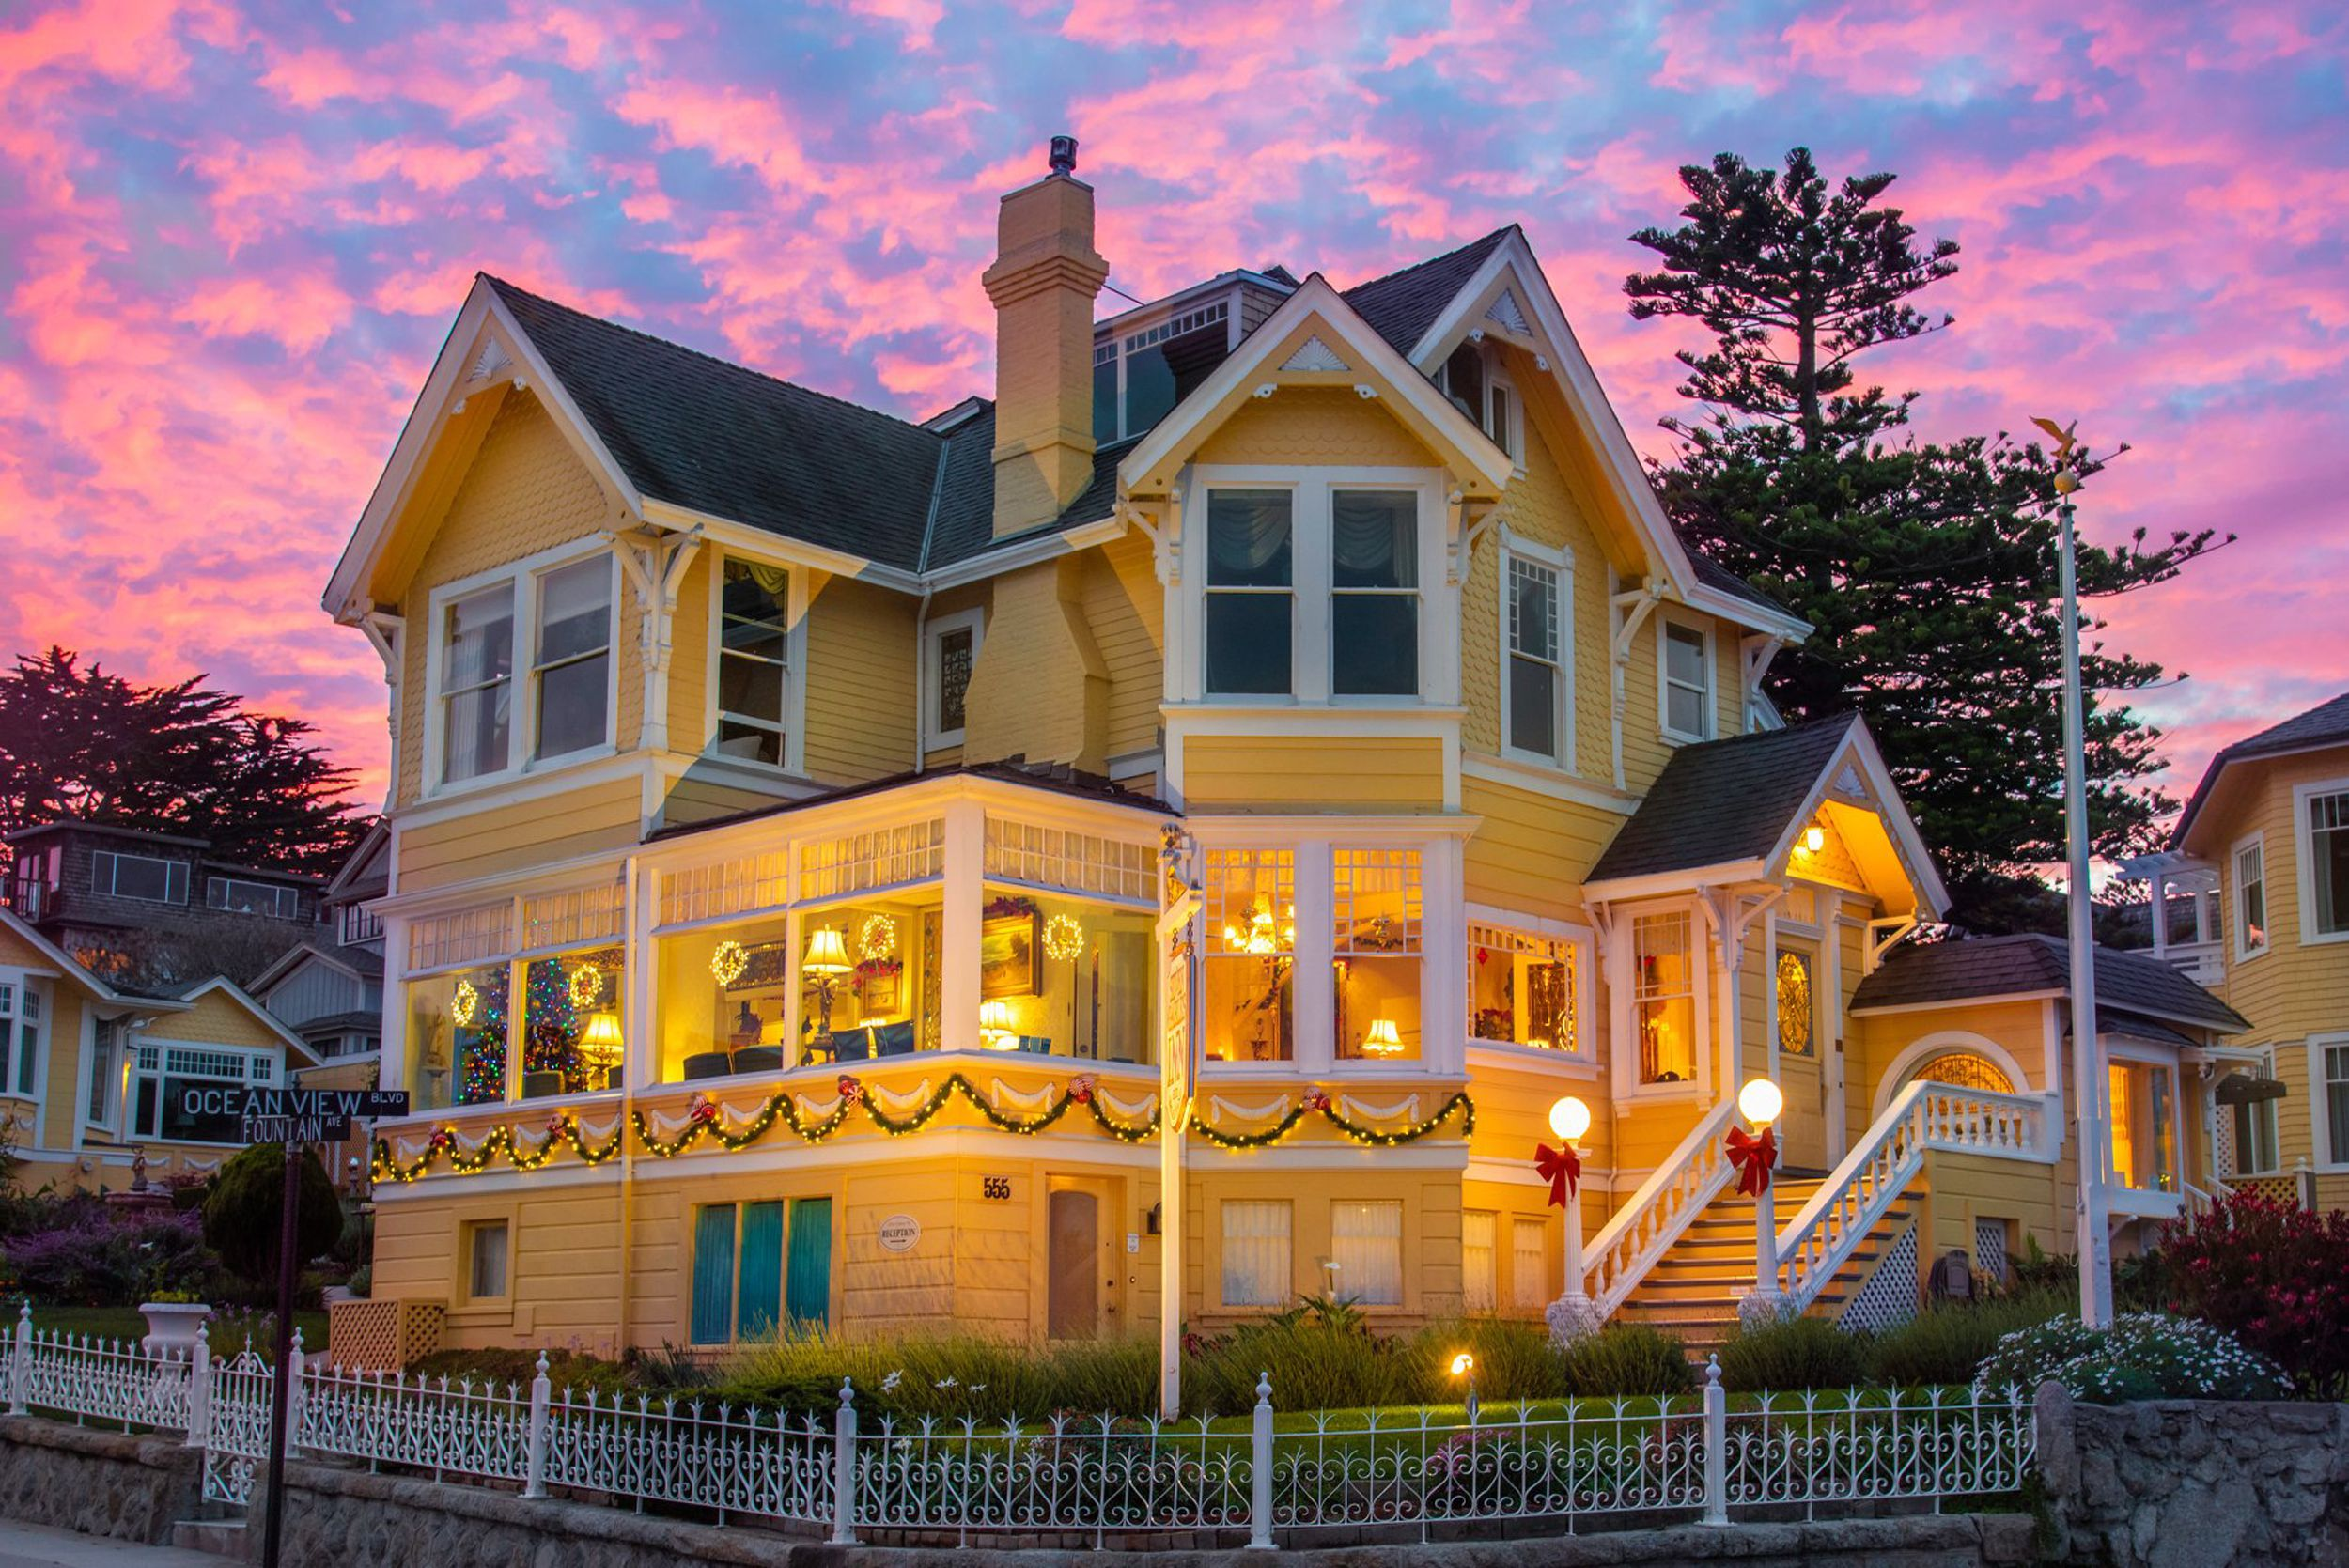 Seven Gables Inn Bed and Breakfast - Pacific Grove, CA